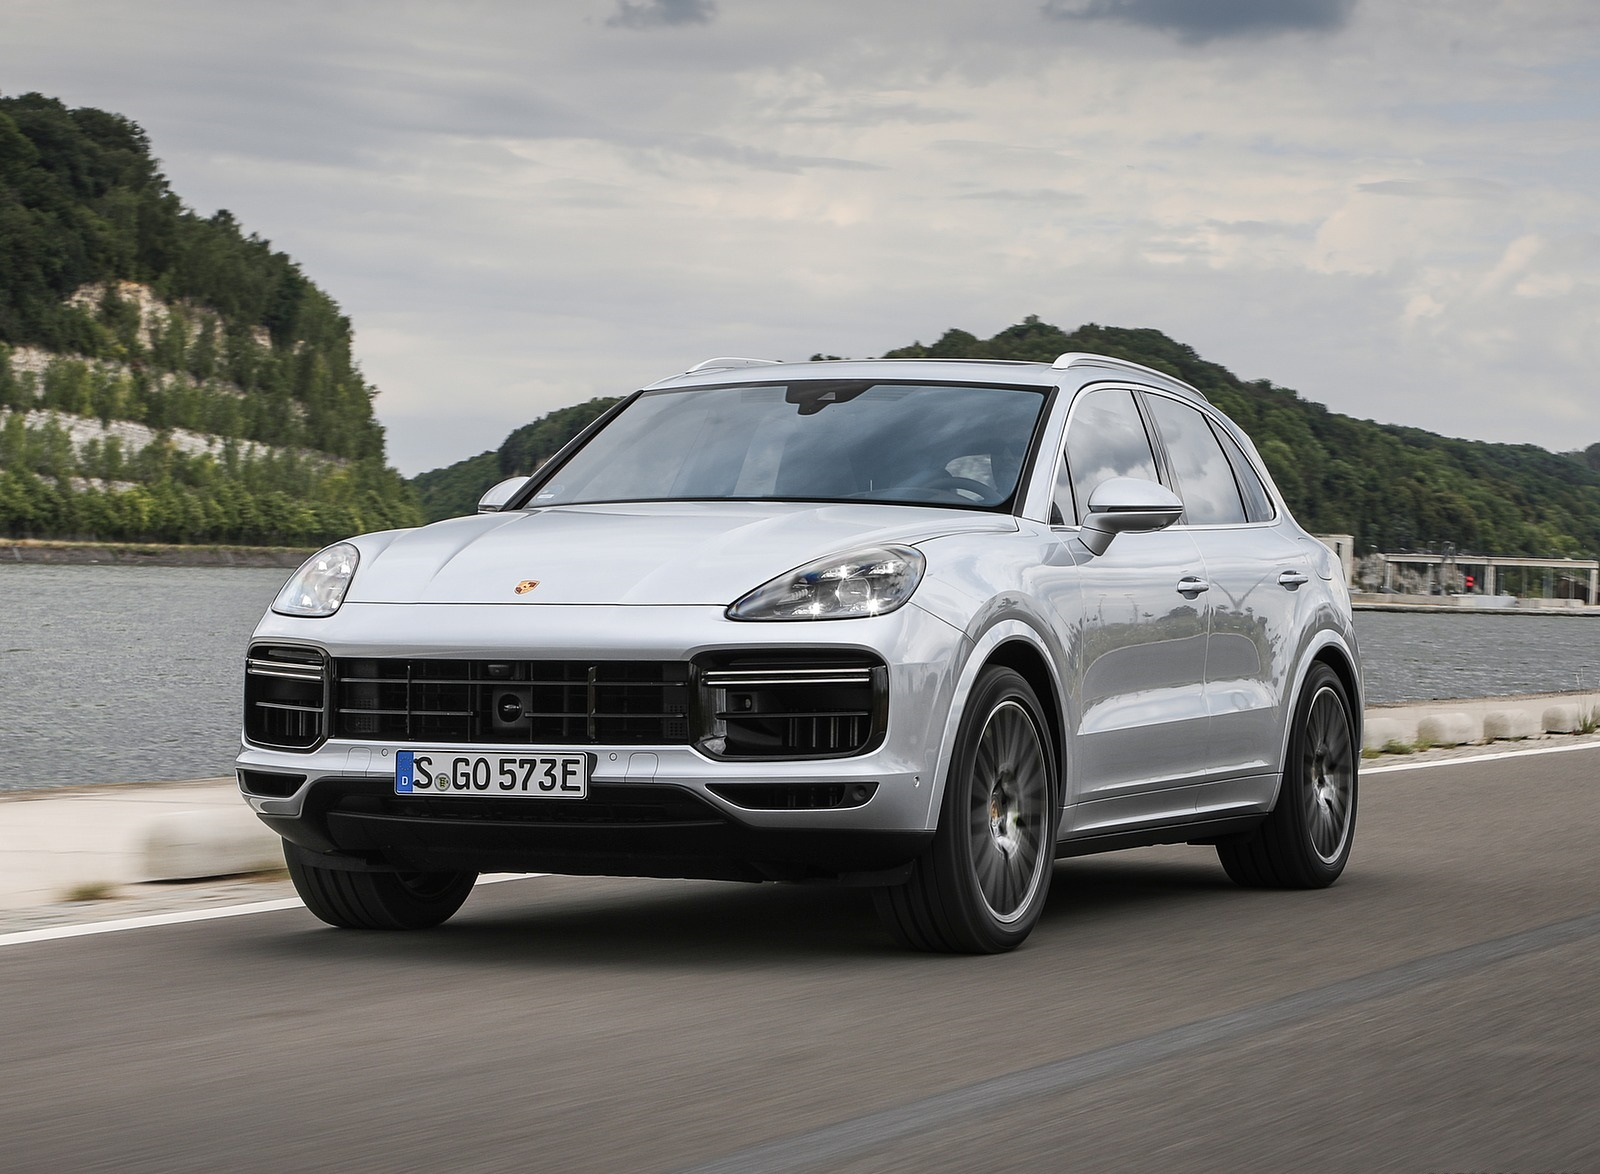 2020 Porsche Cayenne Turbo S E-Hybrid Front Three-Quarter Wallpapers (3)